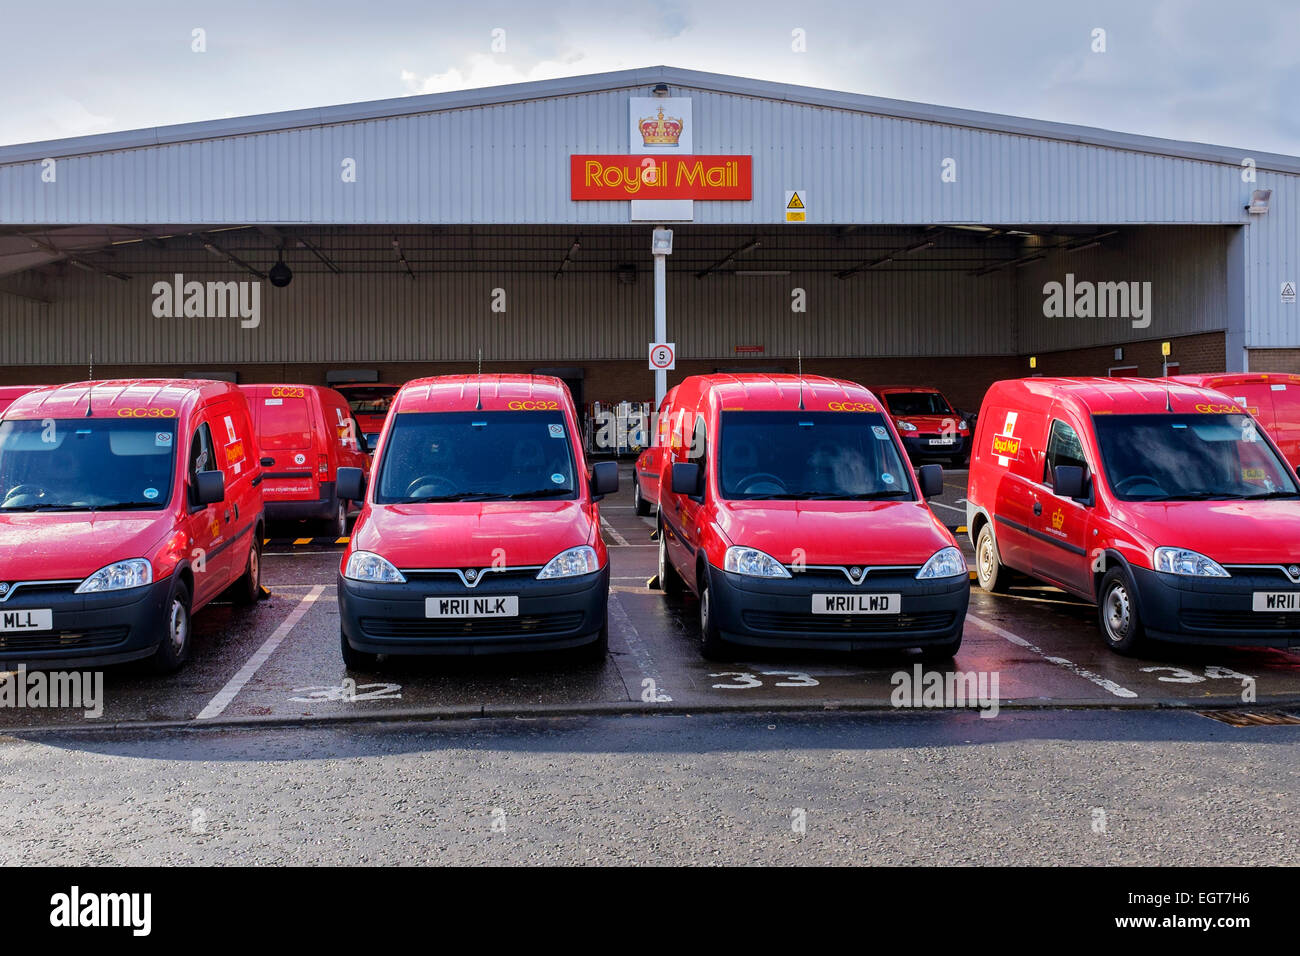 Post Office Delivery Vans At The Depot, Glasgow, Scotland, UK   Stock Image